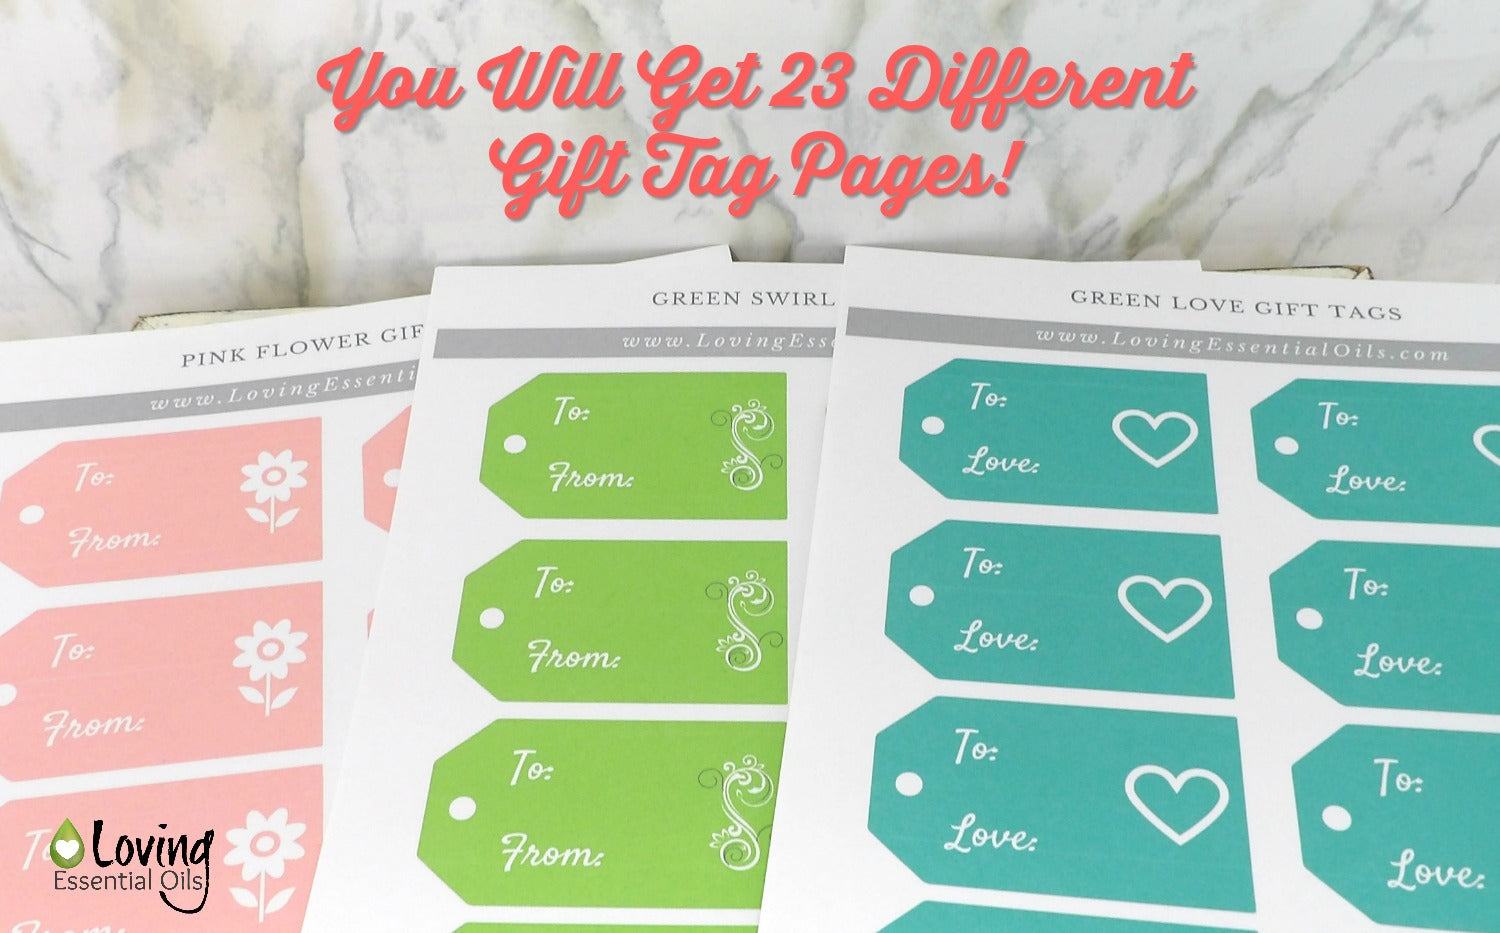 photograph about Gift Tag Printable named 184 No cost Printable Blank Present Tags For Do it yourself Recipes, Delivers